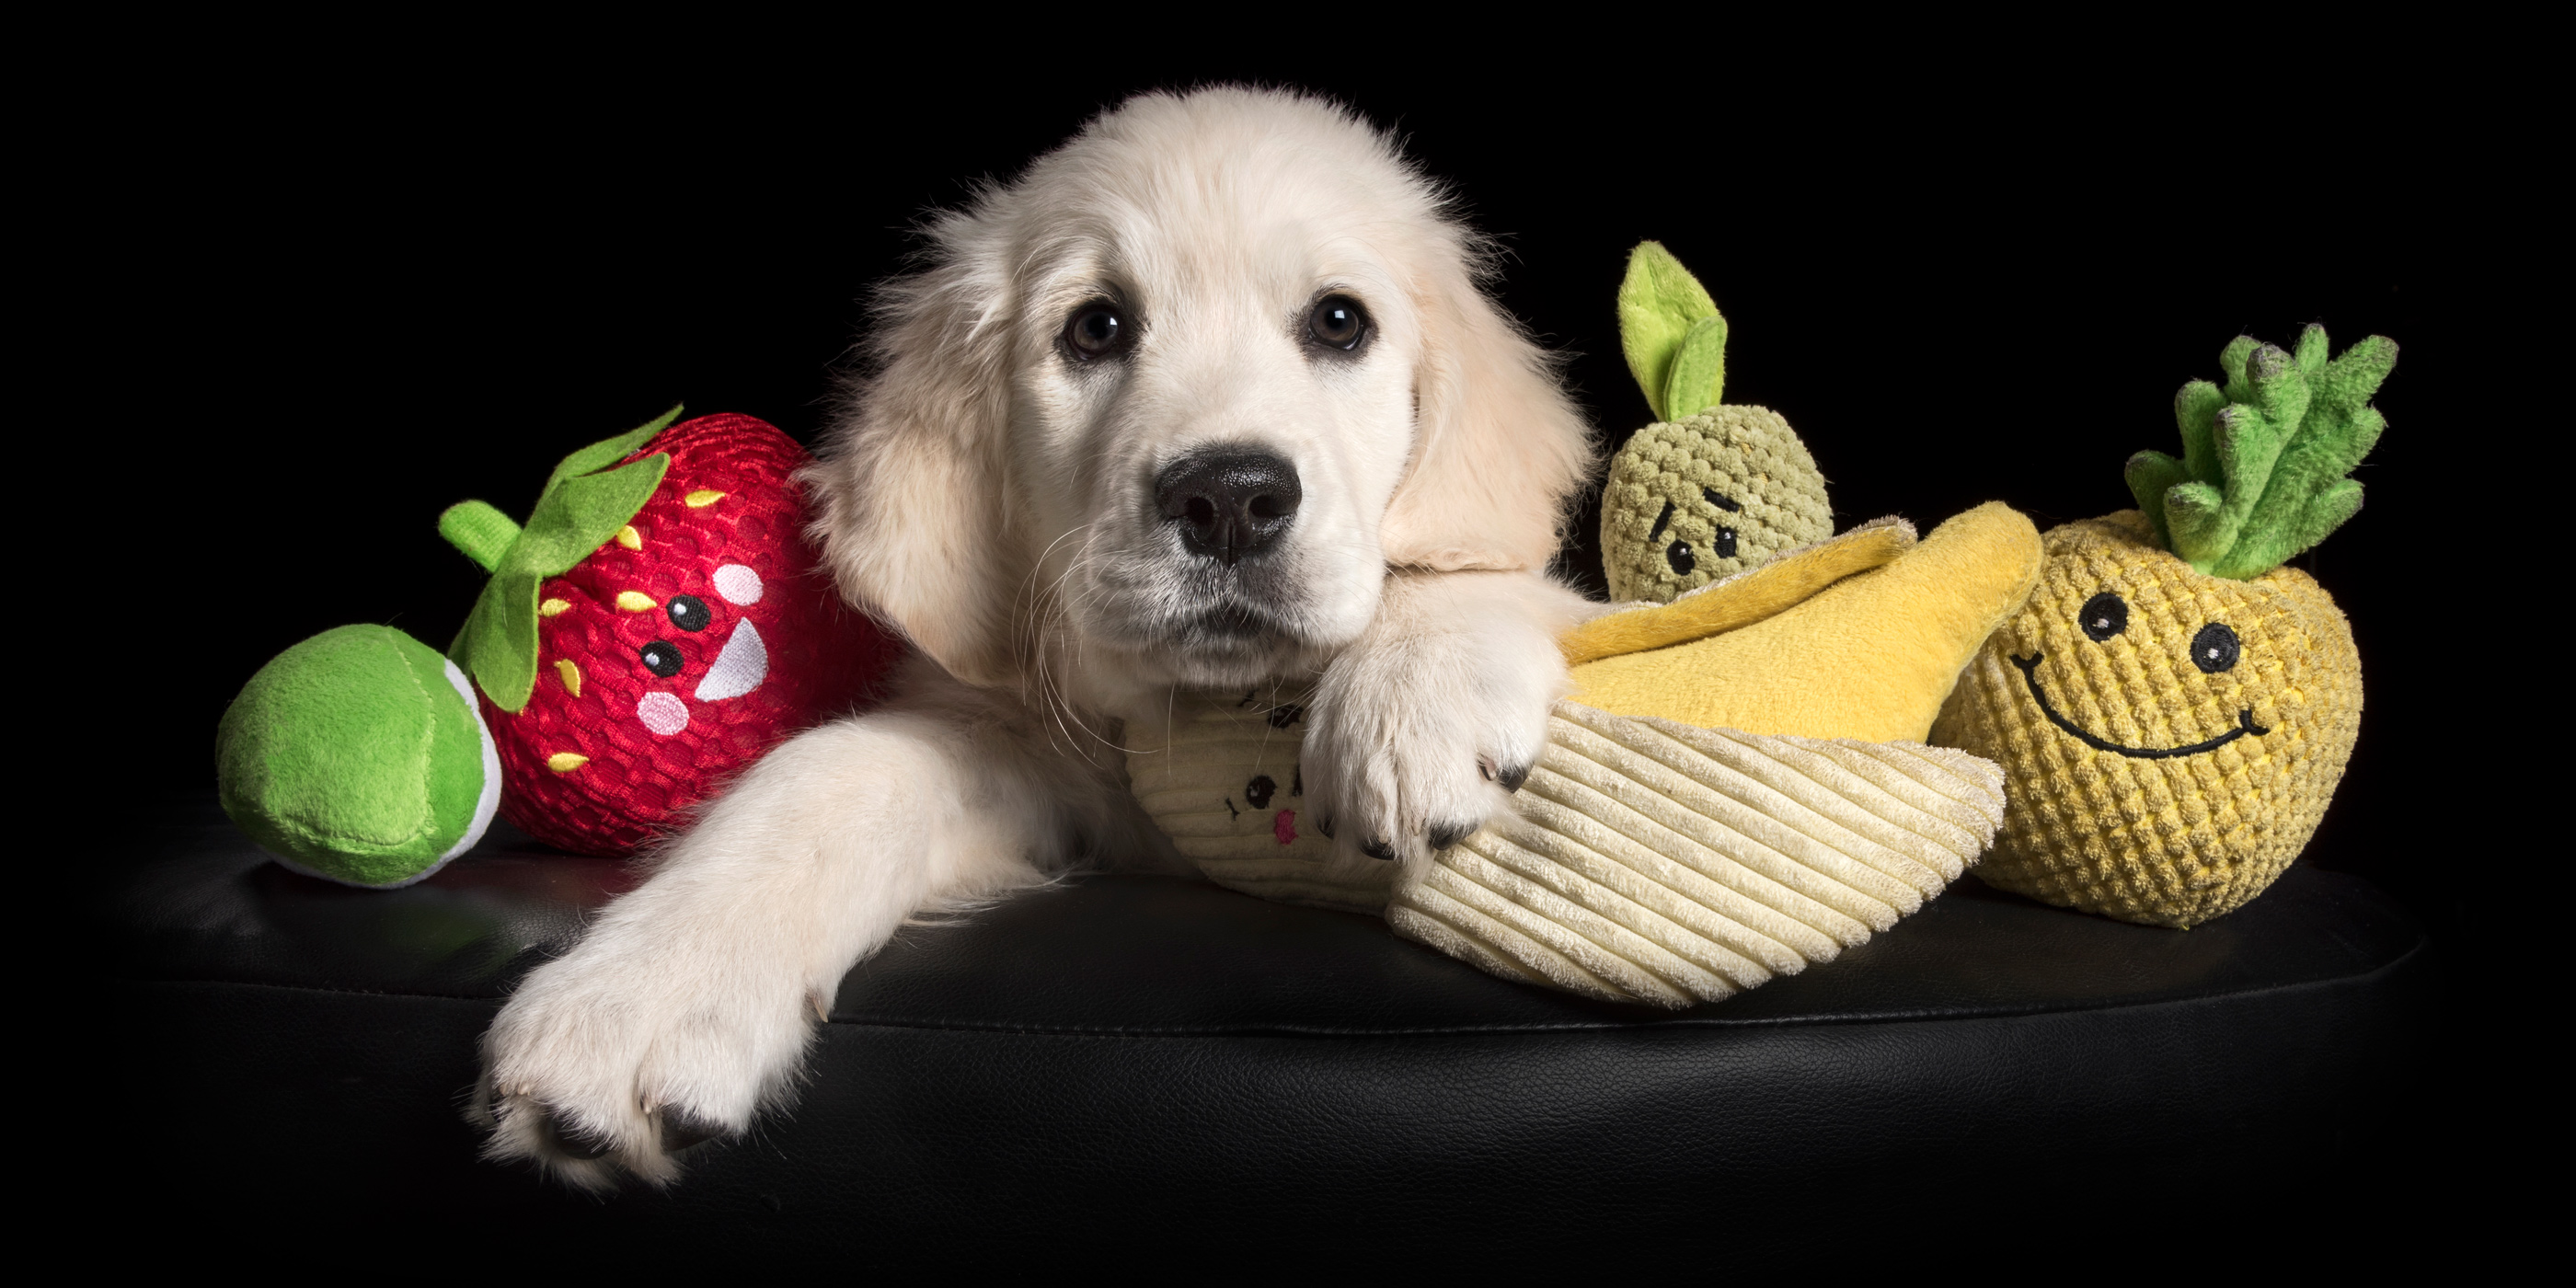 white pup golden retriever surrounded by fruit toys